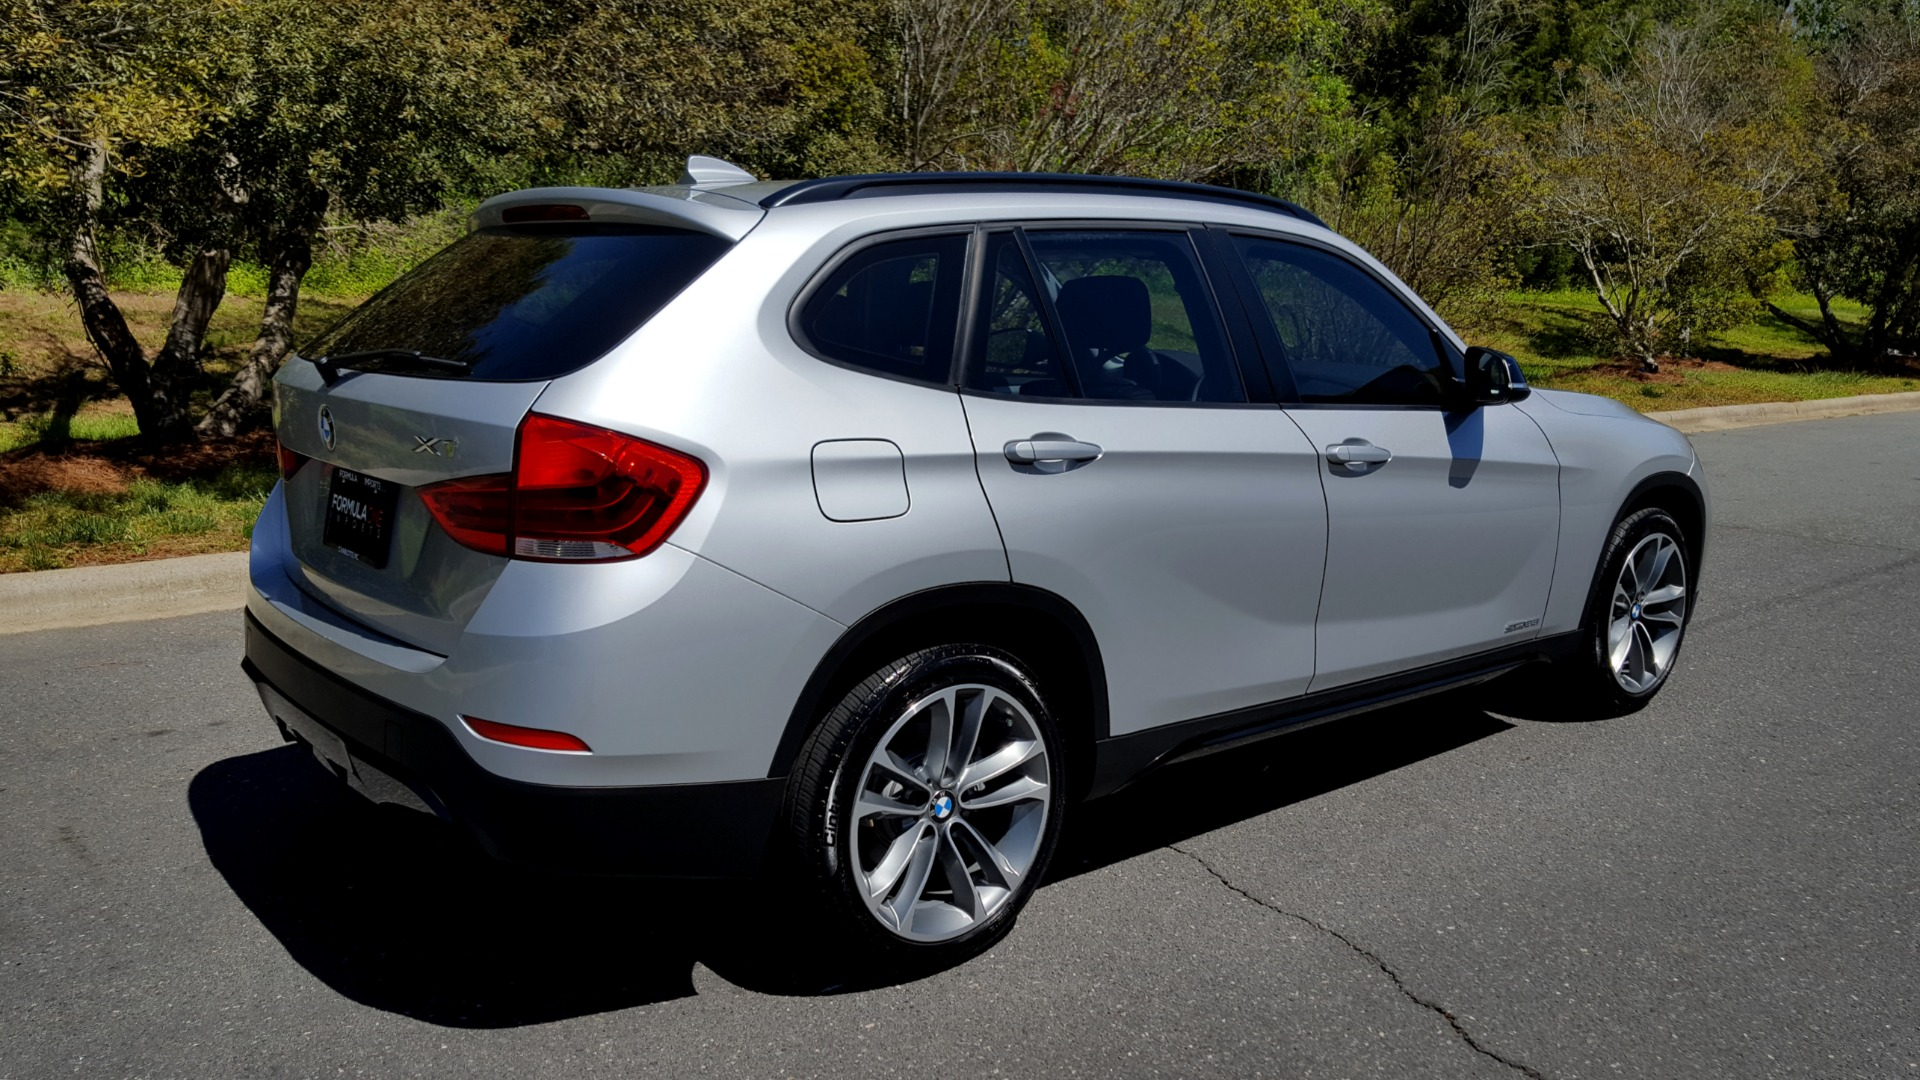 Used 2015 BMW X1 SDRIVE28I / SPORT LINE / PANO-ROOF / HTD STS / DUAL-ZONE CLIMATE for sale Sold at Formula Imports in Charlotte NC 28227 4